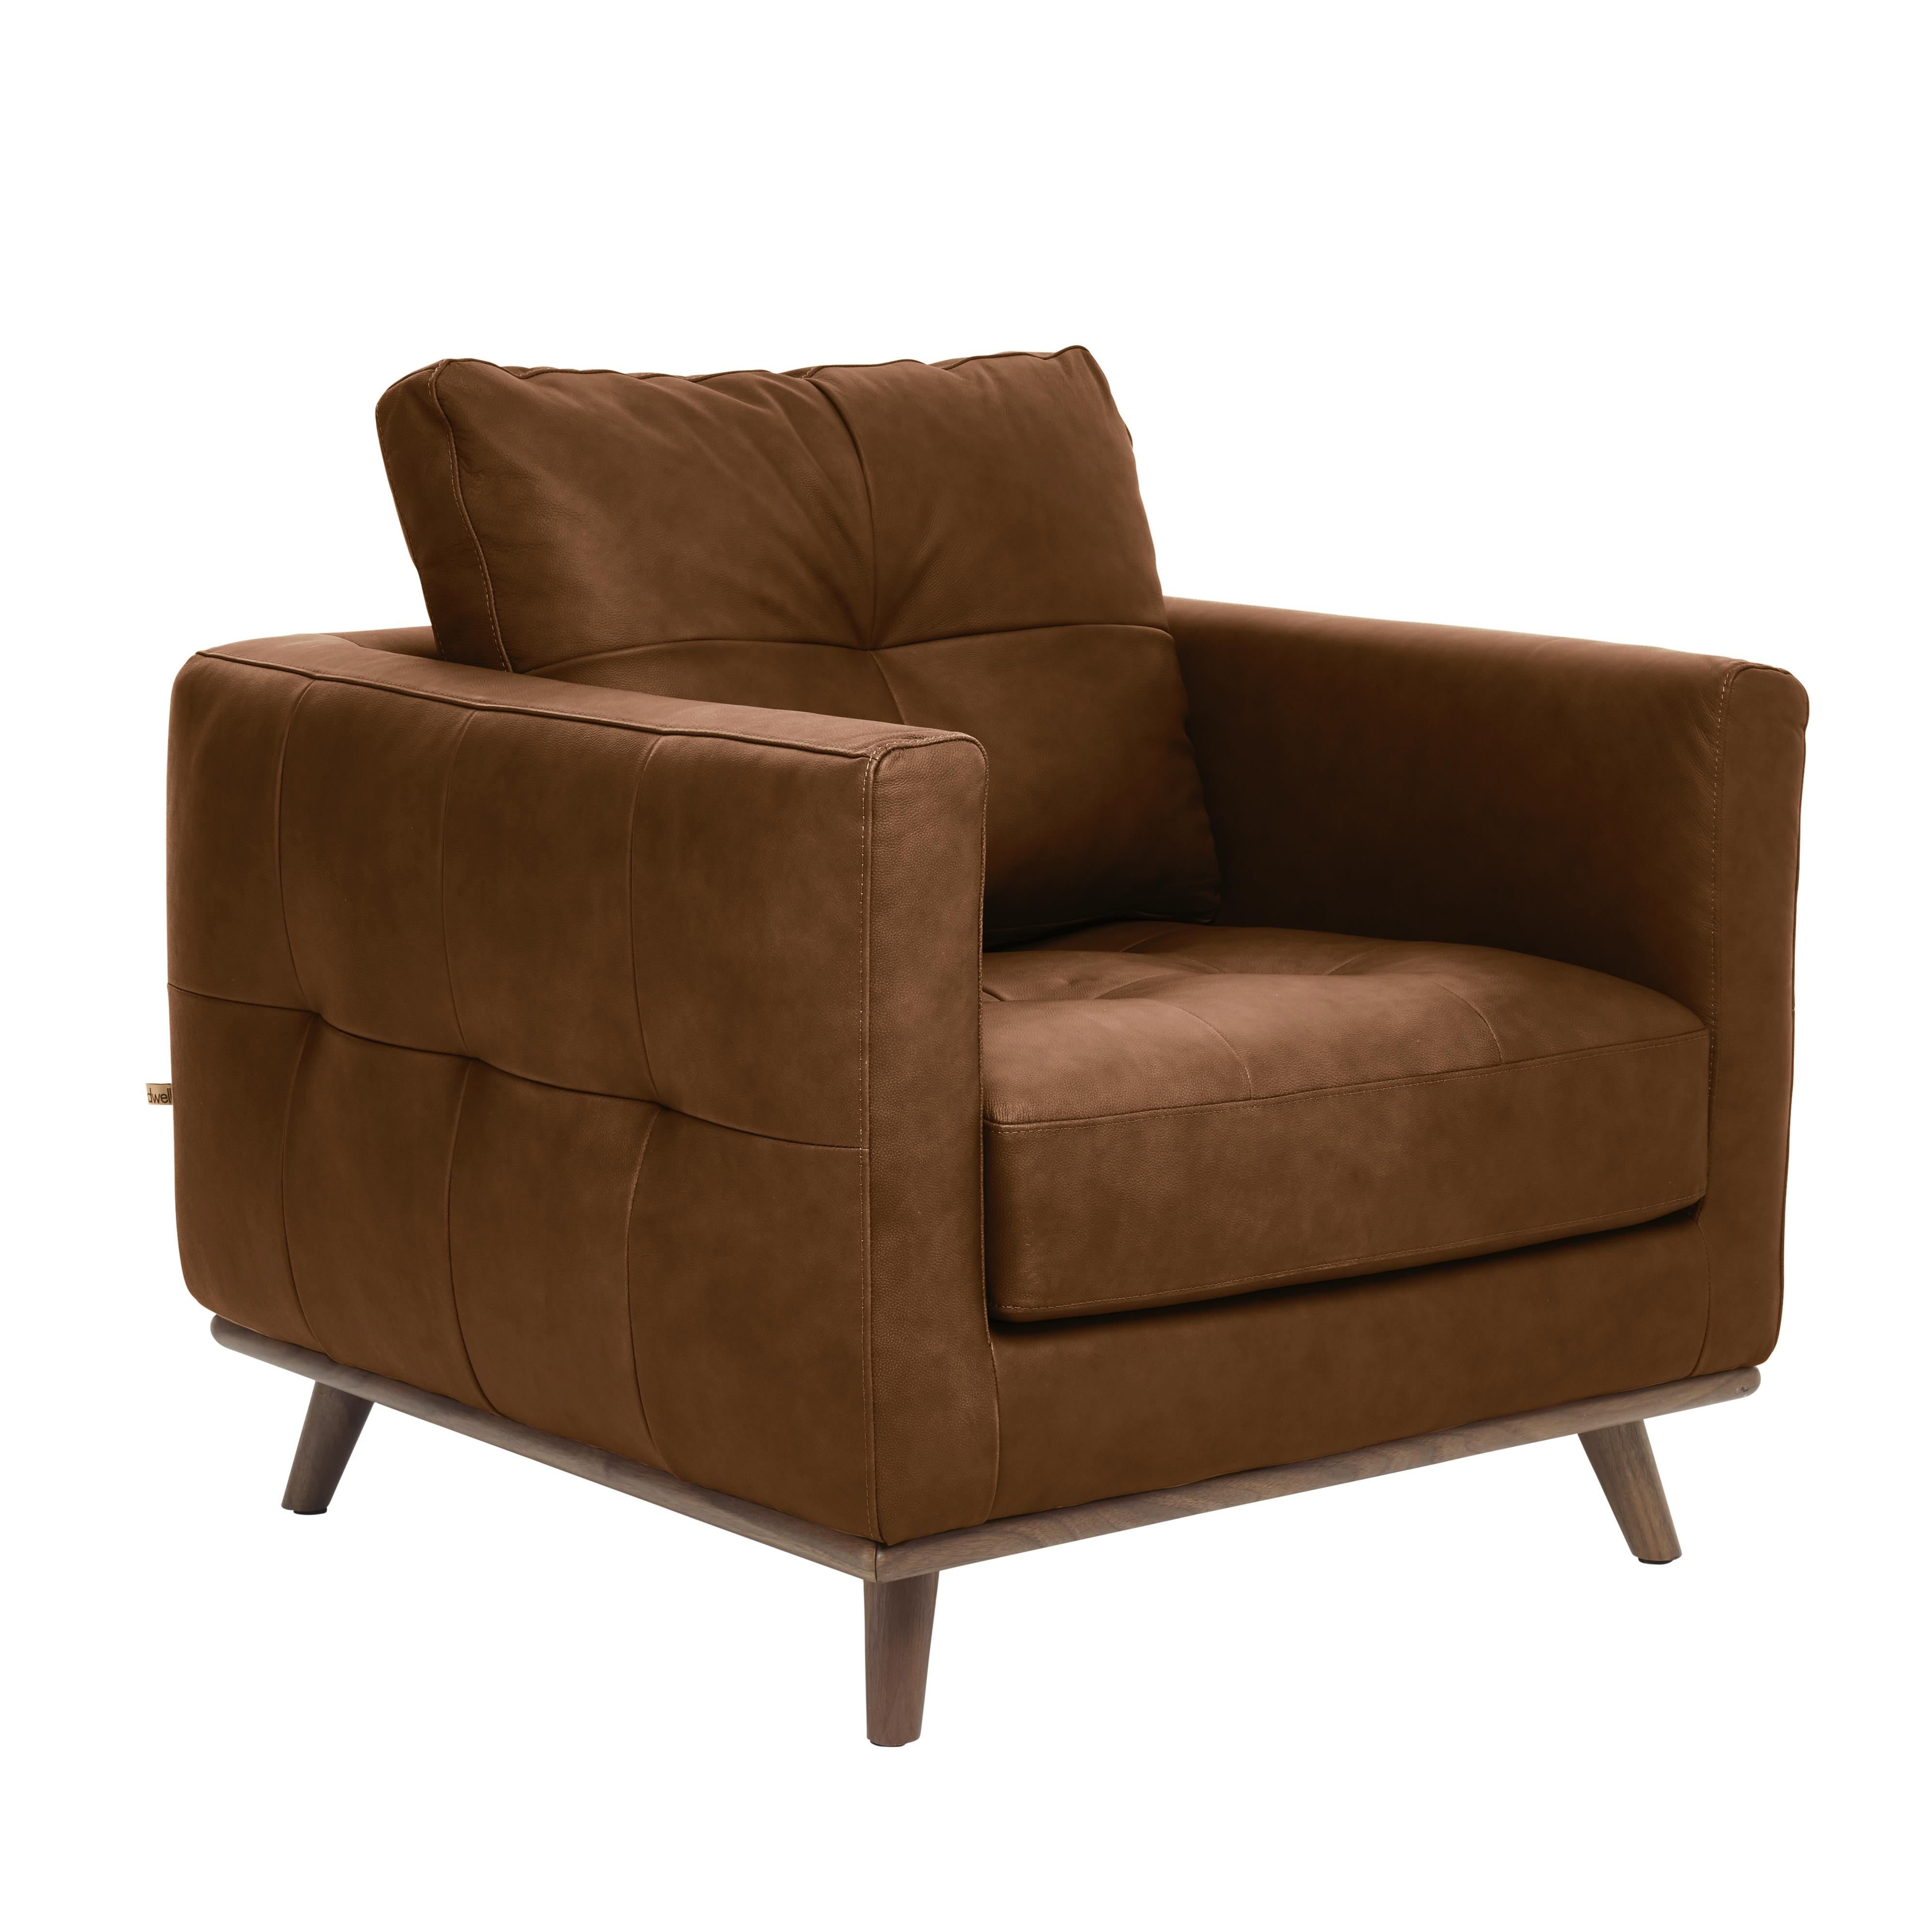 Albi armchair grano leather natural tan